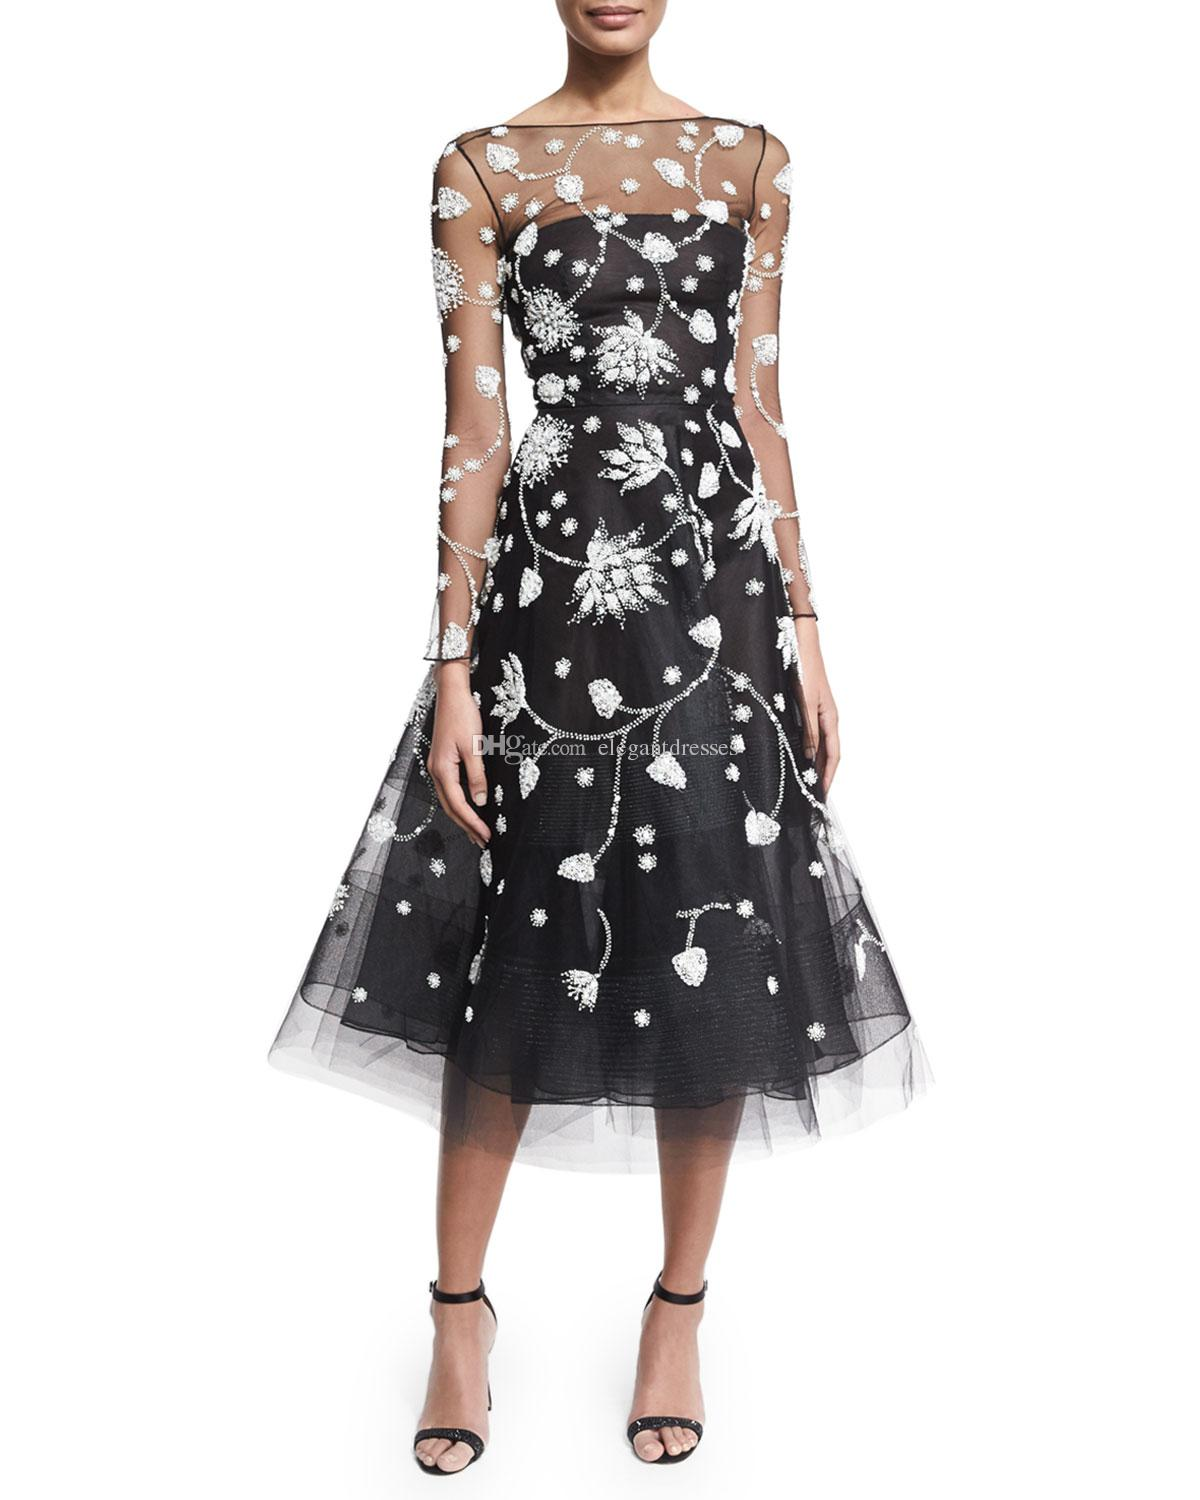 2017 Newest Black Sheer Tulle Lace Applique Long Sleeve Crew Sexy Prom Dresses Long Evening Dresses Open Back New Style Zuhair Murad